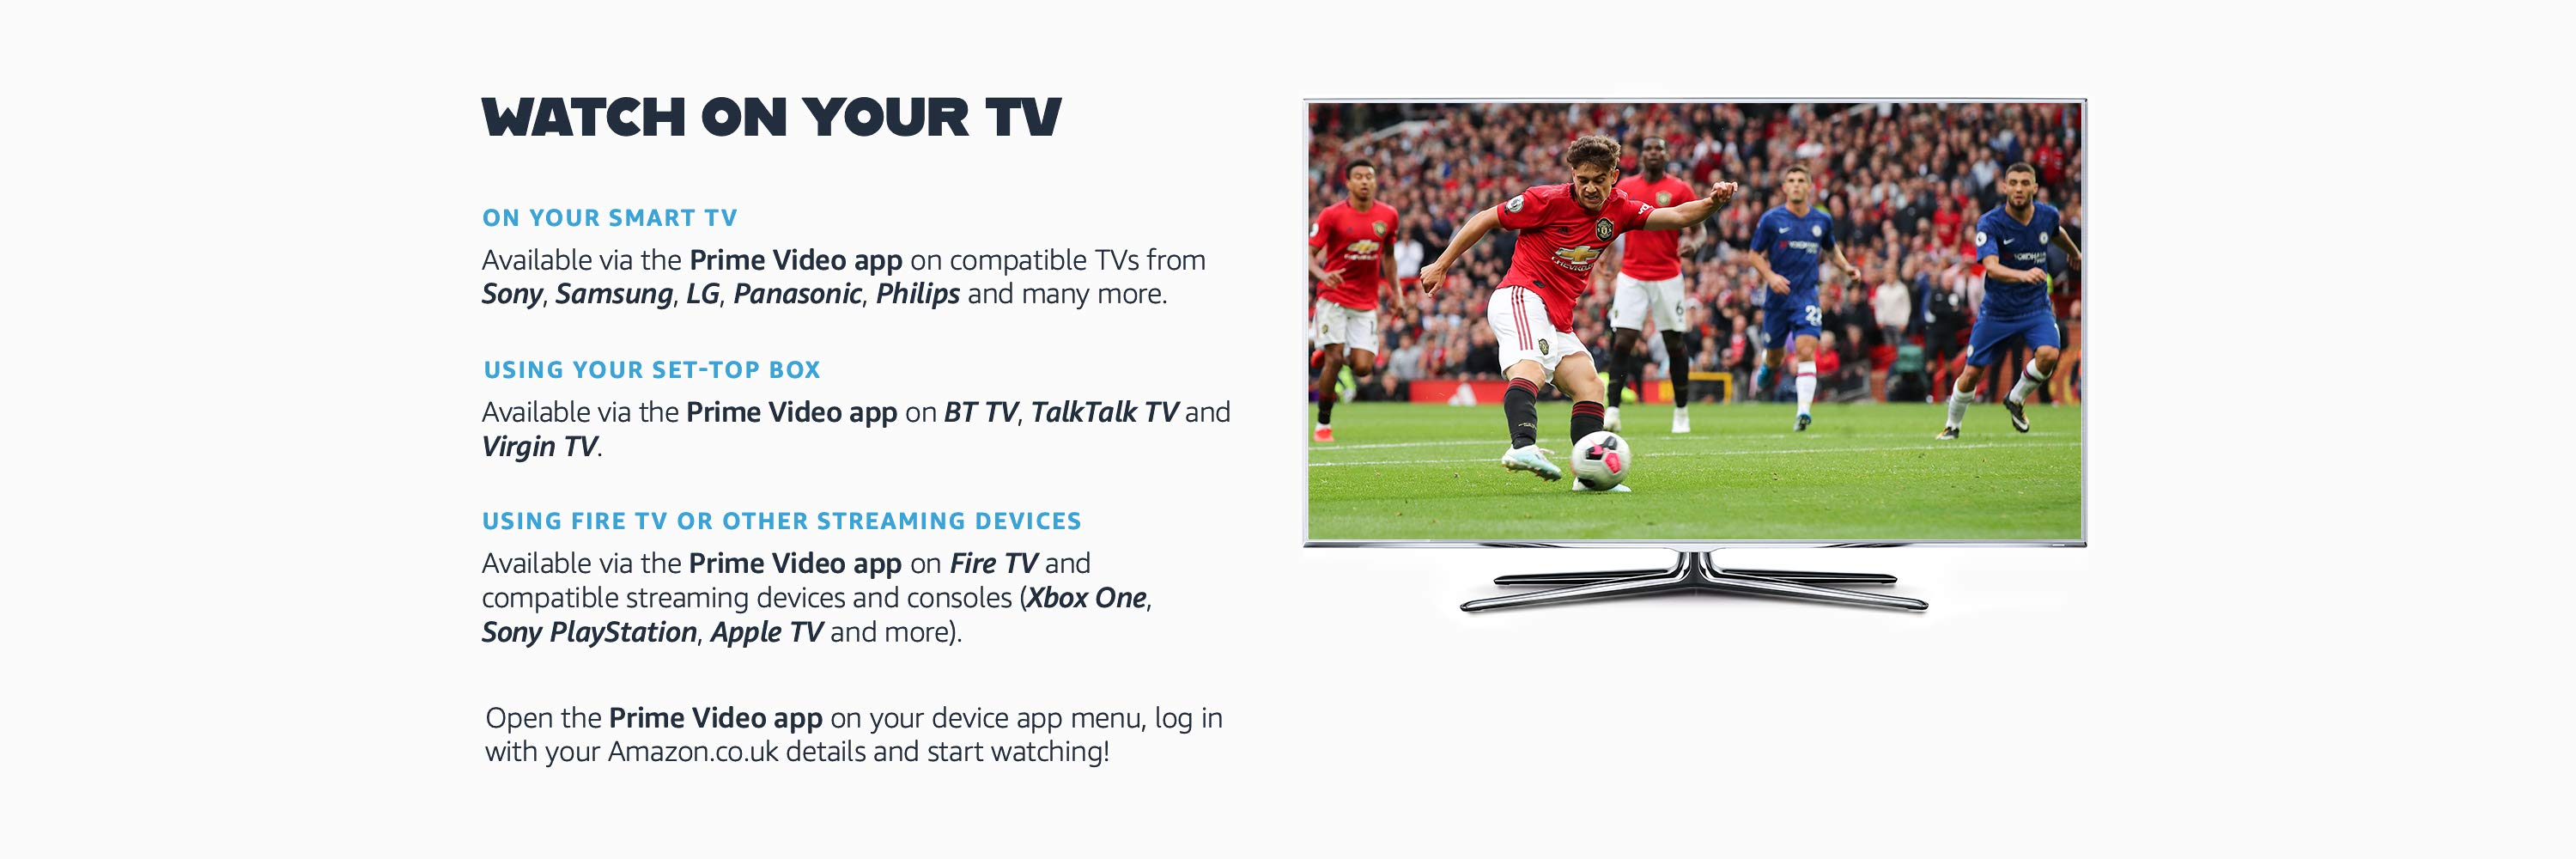 Watch on your TV